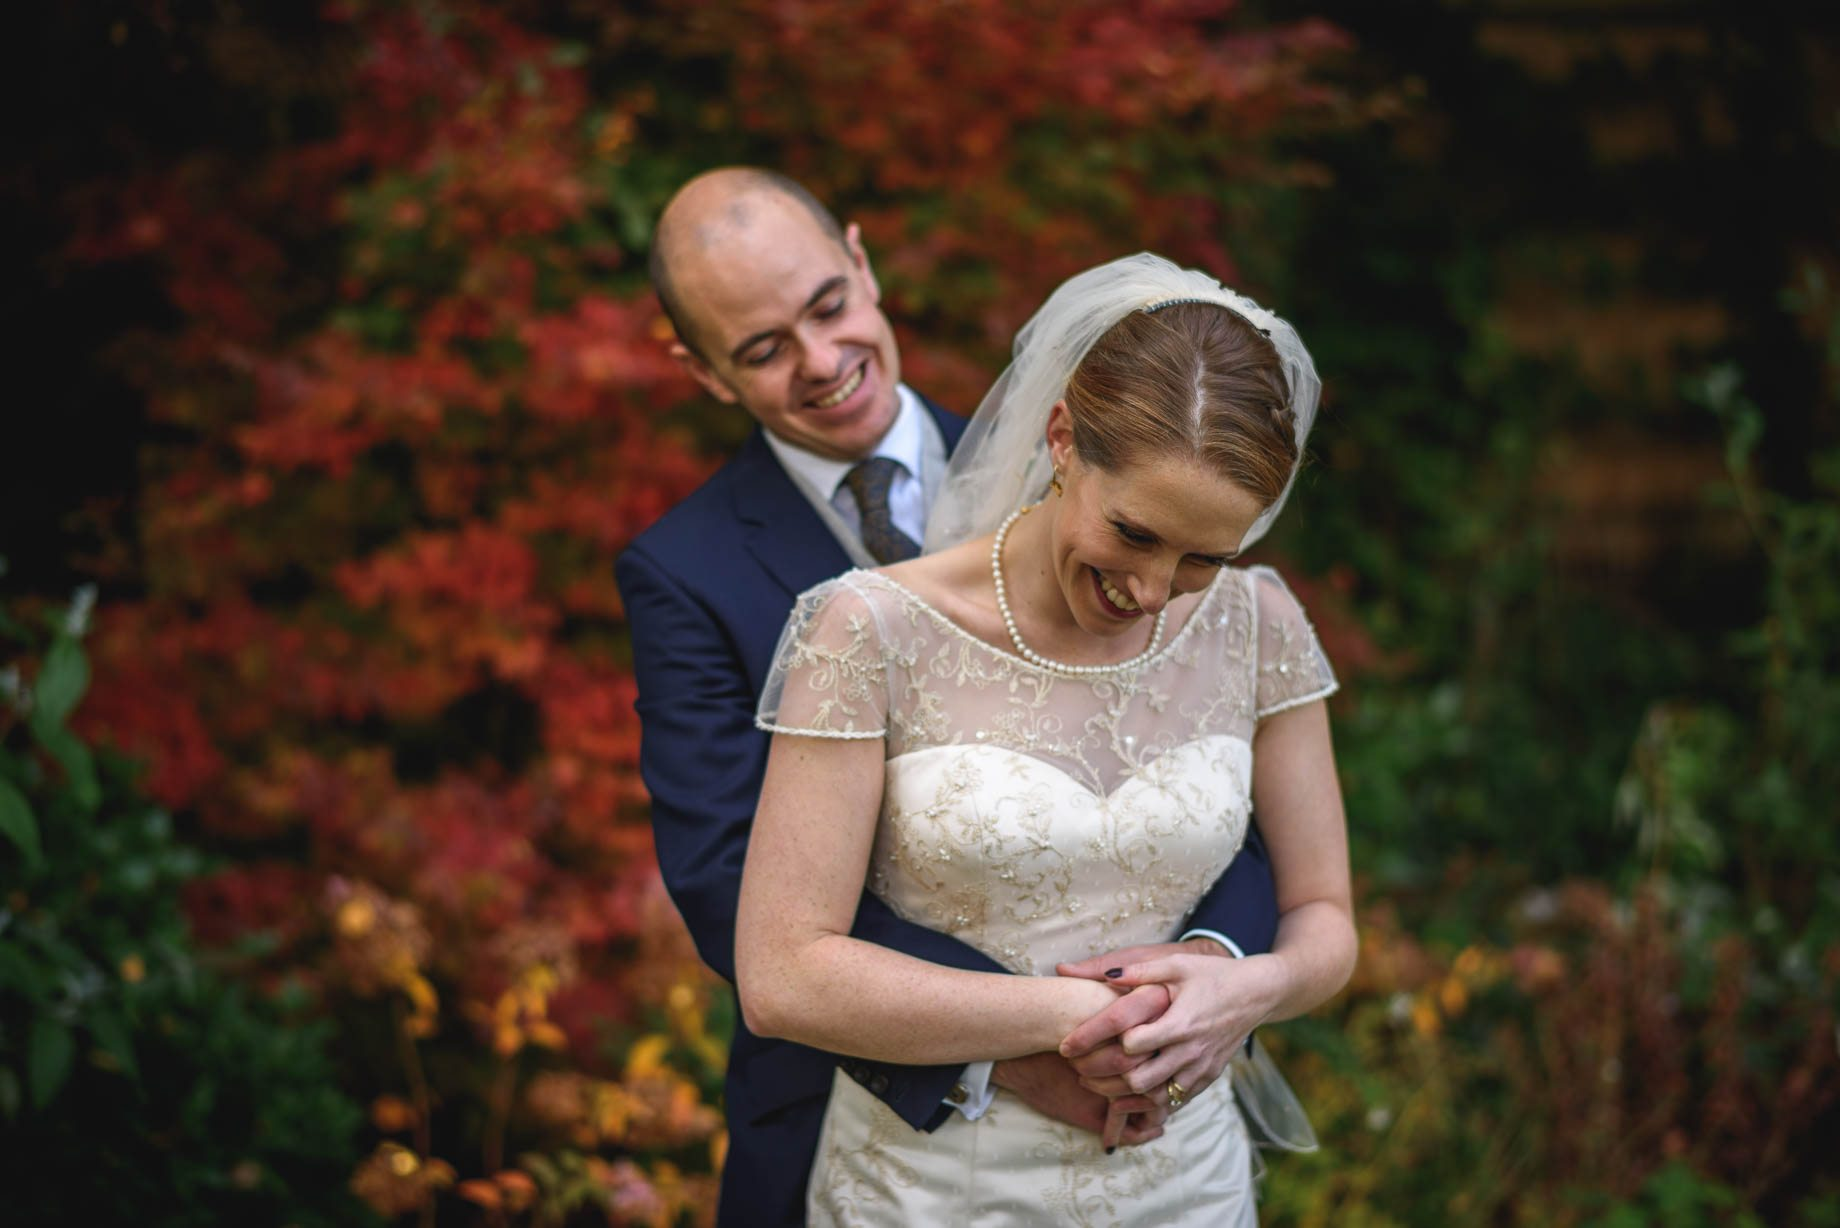 millbridge-court-wedding-photography-guy-collier-photography-clare-and-ian-121-of-188